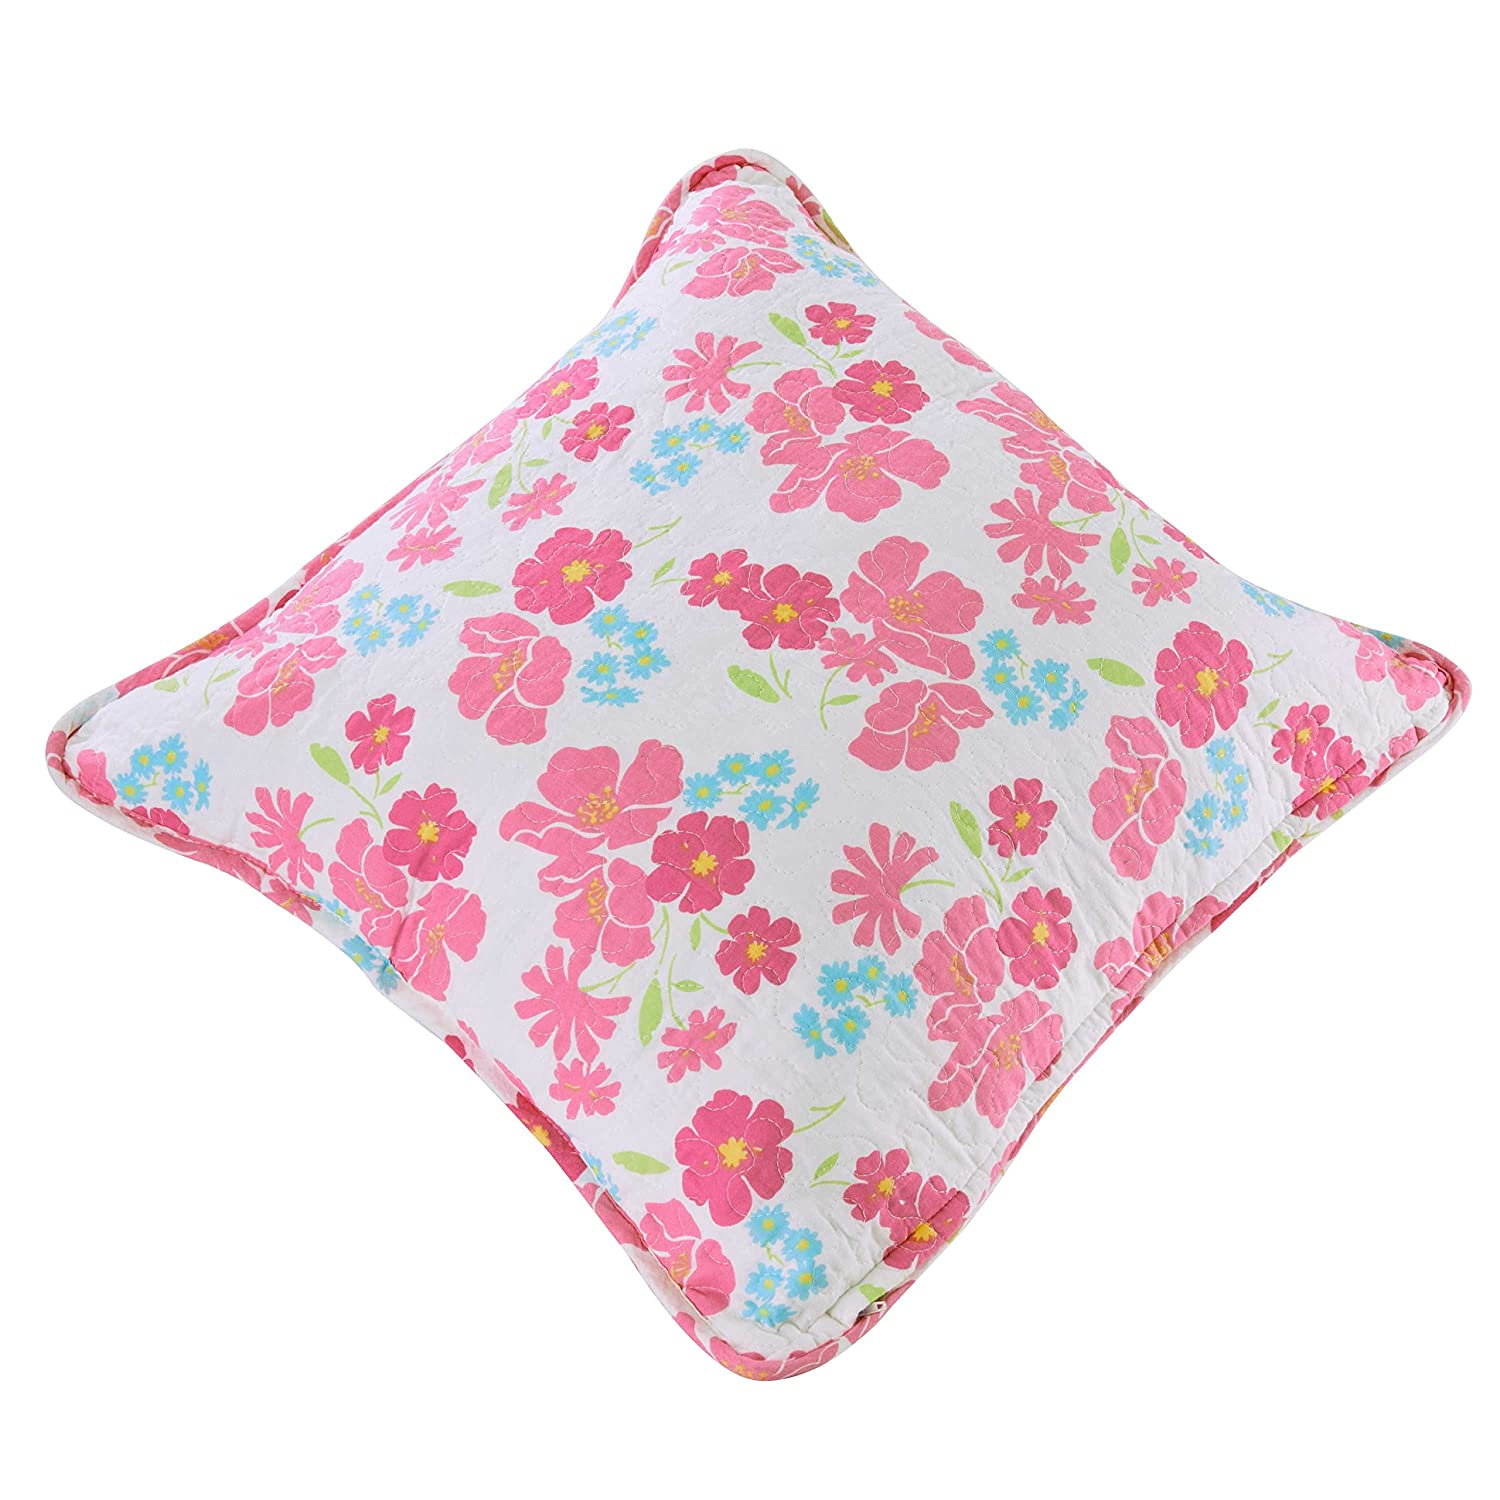 Unimall 100% Cotton Single Double Size Quilted Bedspread Birds Butterfly Colorful Patchwork Quilt Throw Blanket Two Pieces